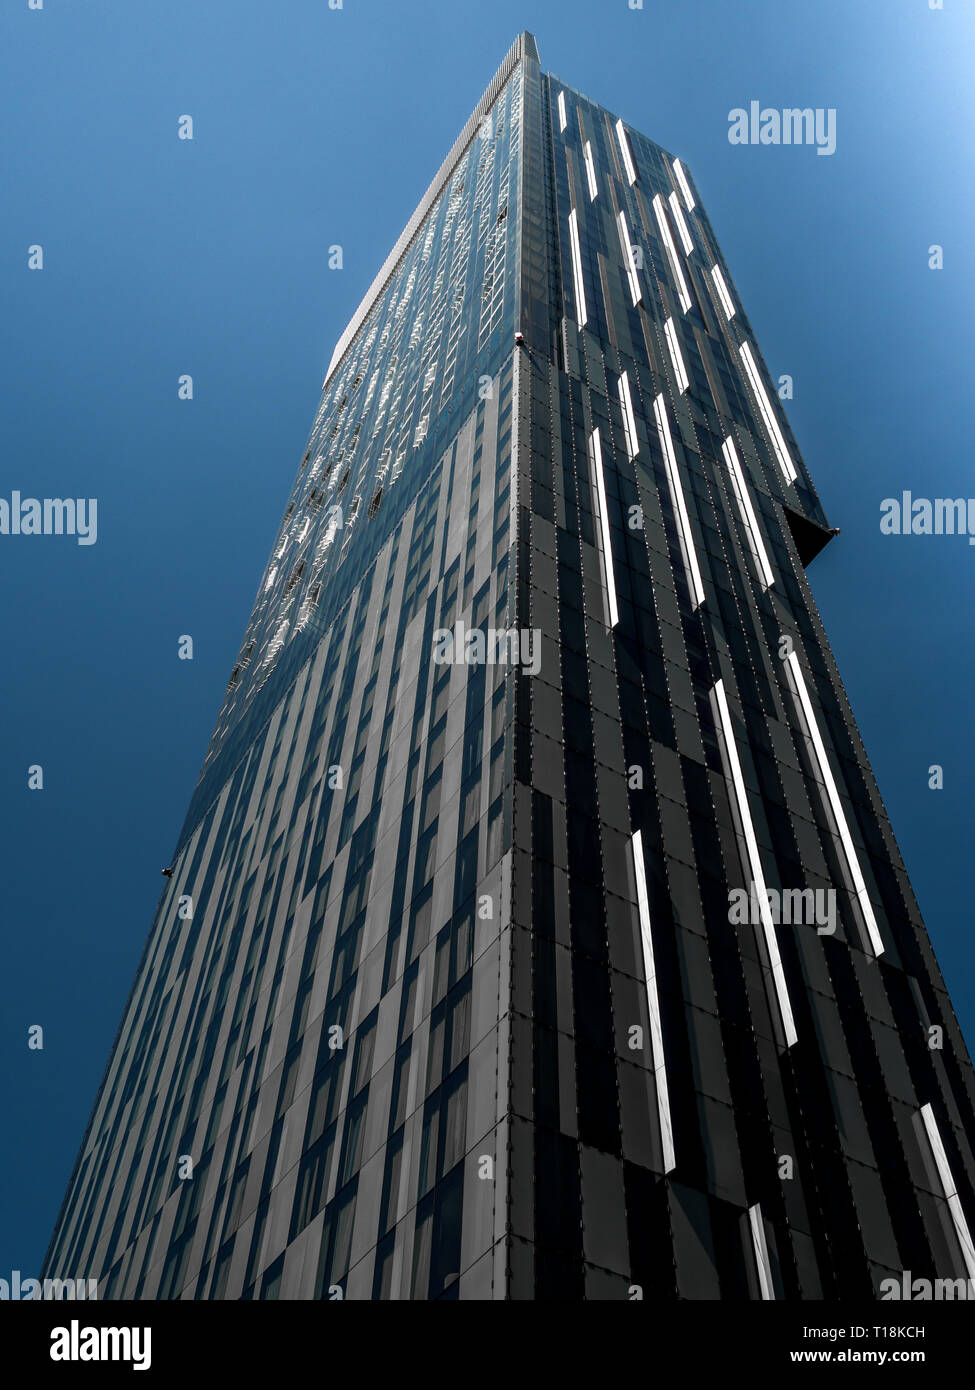 Beetham Tower and Hilton Hotel, Deansgate Manchester.  Skyscraper - Stock Image